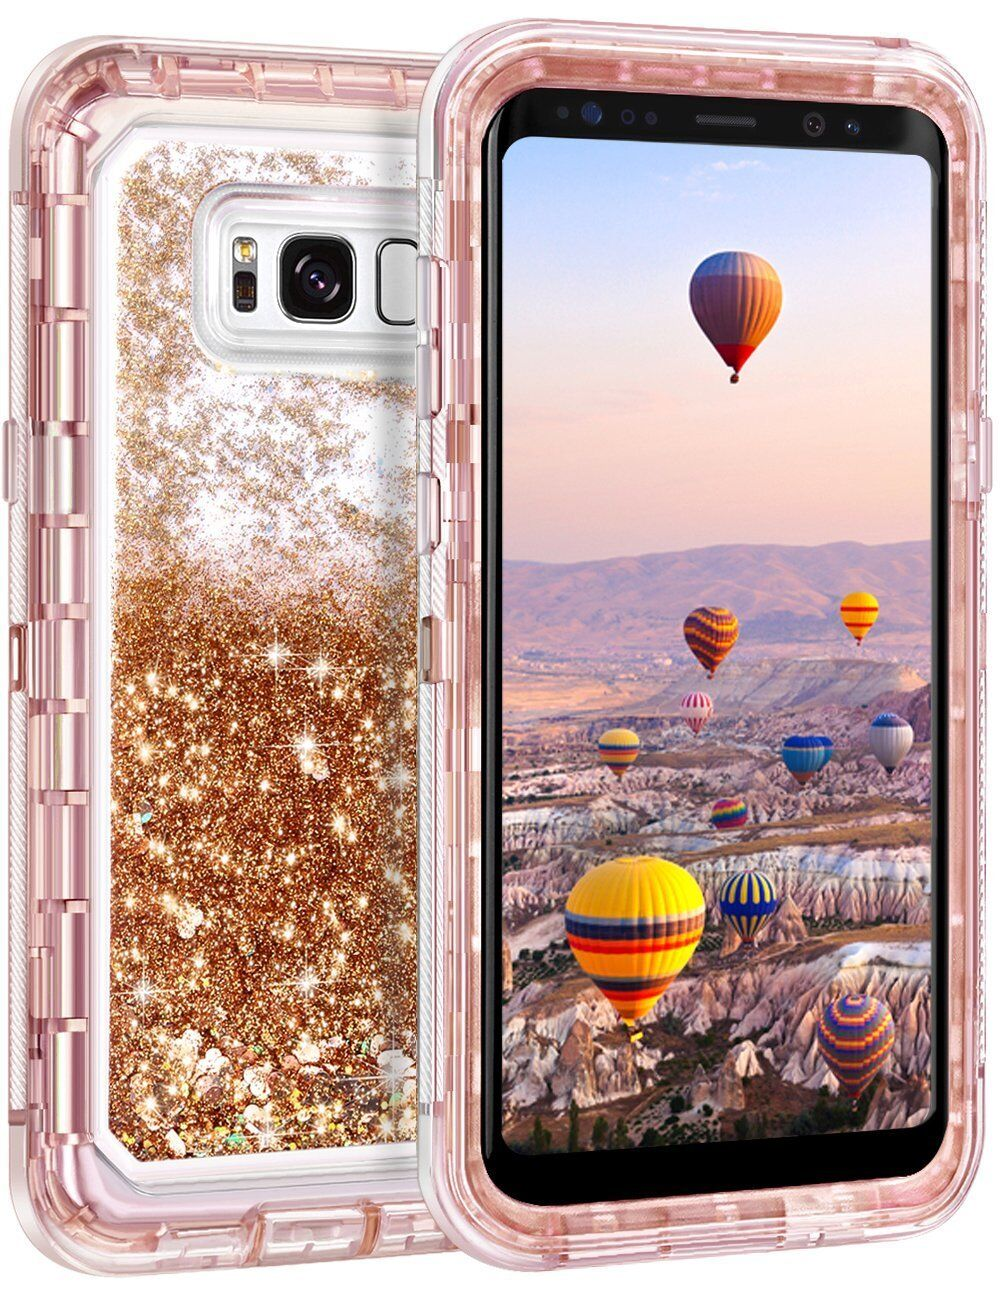 Купить Unbranded/Generic - Samsung Galaxy S9 Plus Liquid Glitter Quicksand Protective Shockproof Case Cover